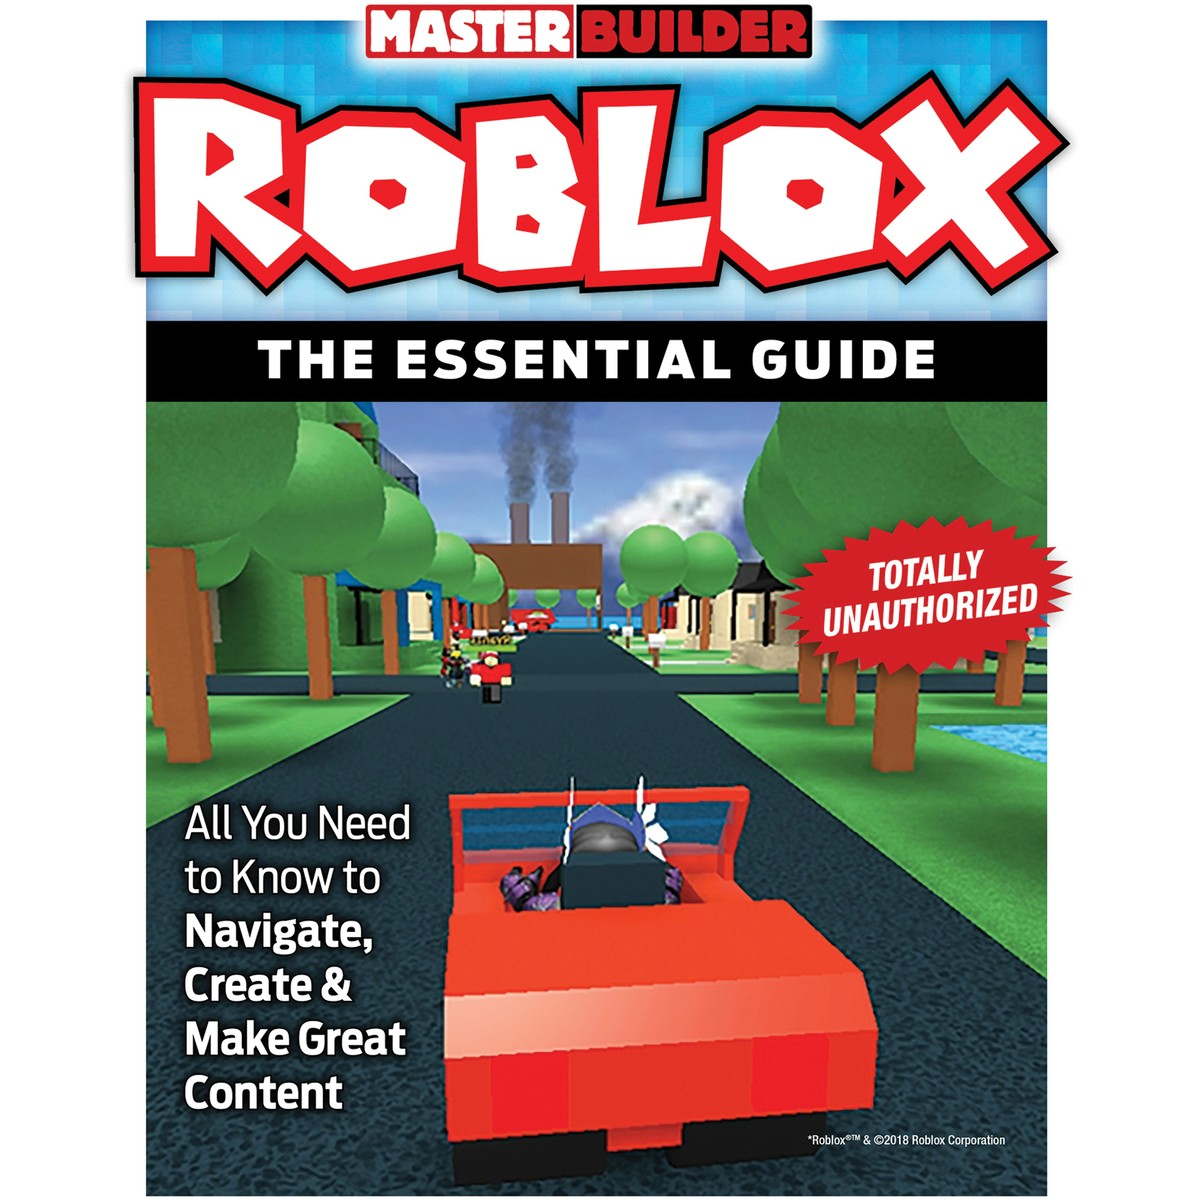 Roblox Toolbox Toy Roblox The Essential Guide Books Non Fiction Craniums Books Toys Hobbies Science Art Roblox Bonf